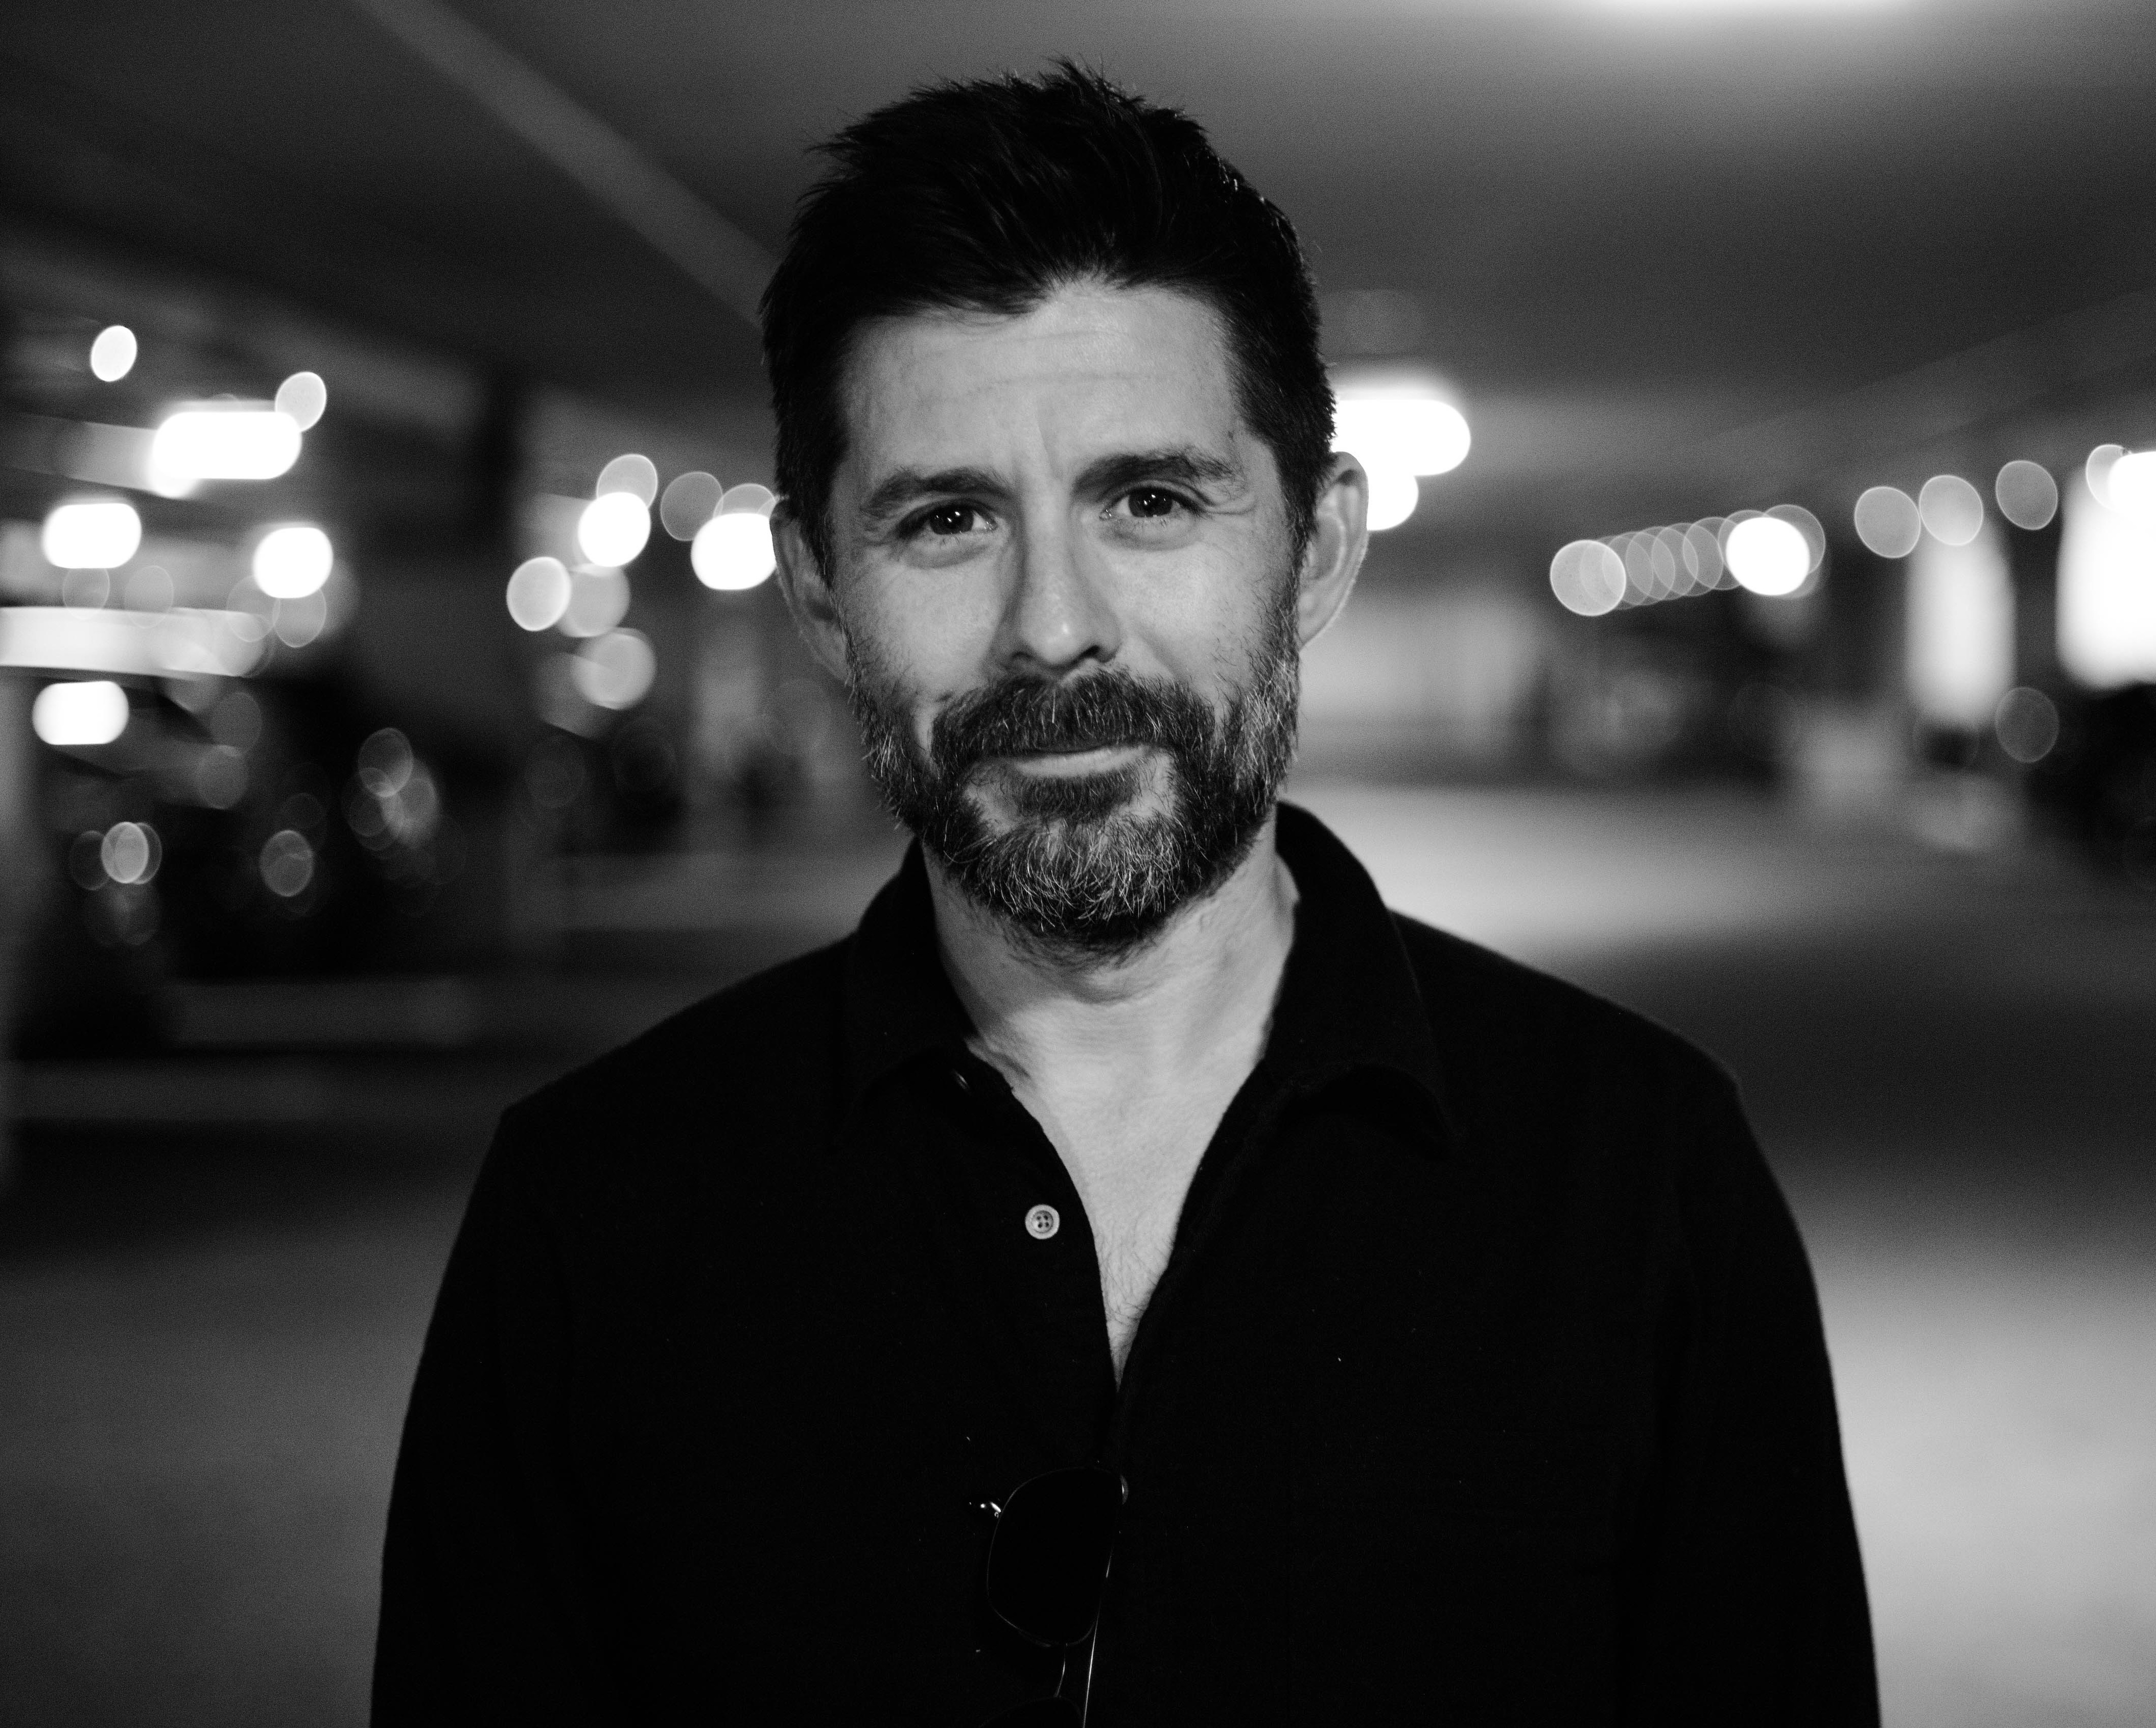 Rick Gomez Imdb Joshua gomez news, gossip, photos of joshua gomez, biography, joshua gomez girlfriend list 2016. rick gomez imdb